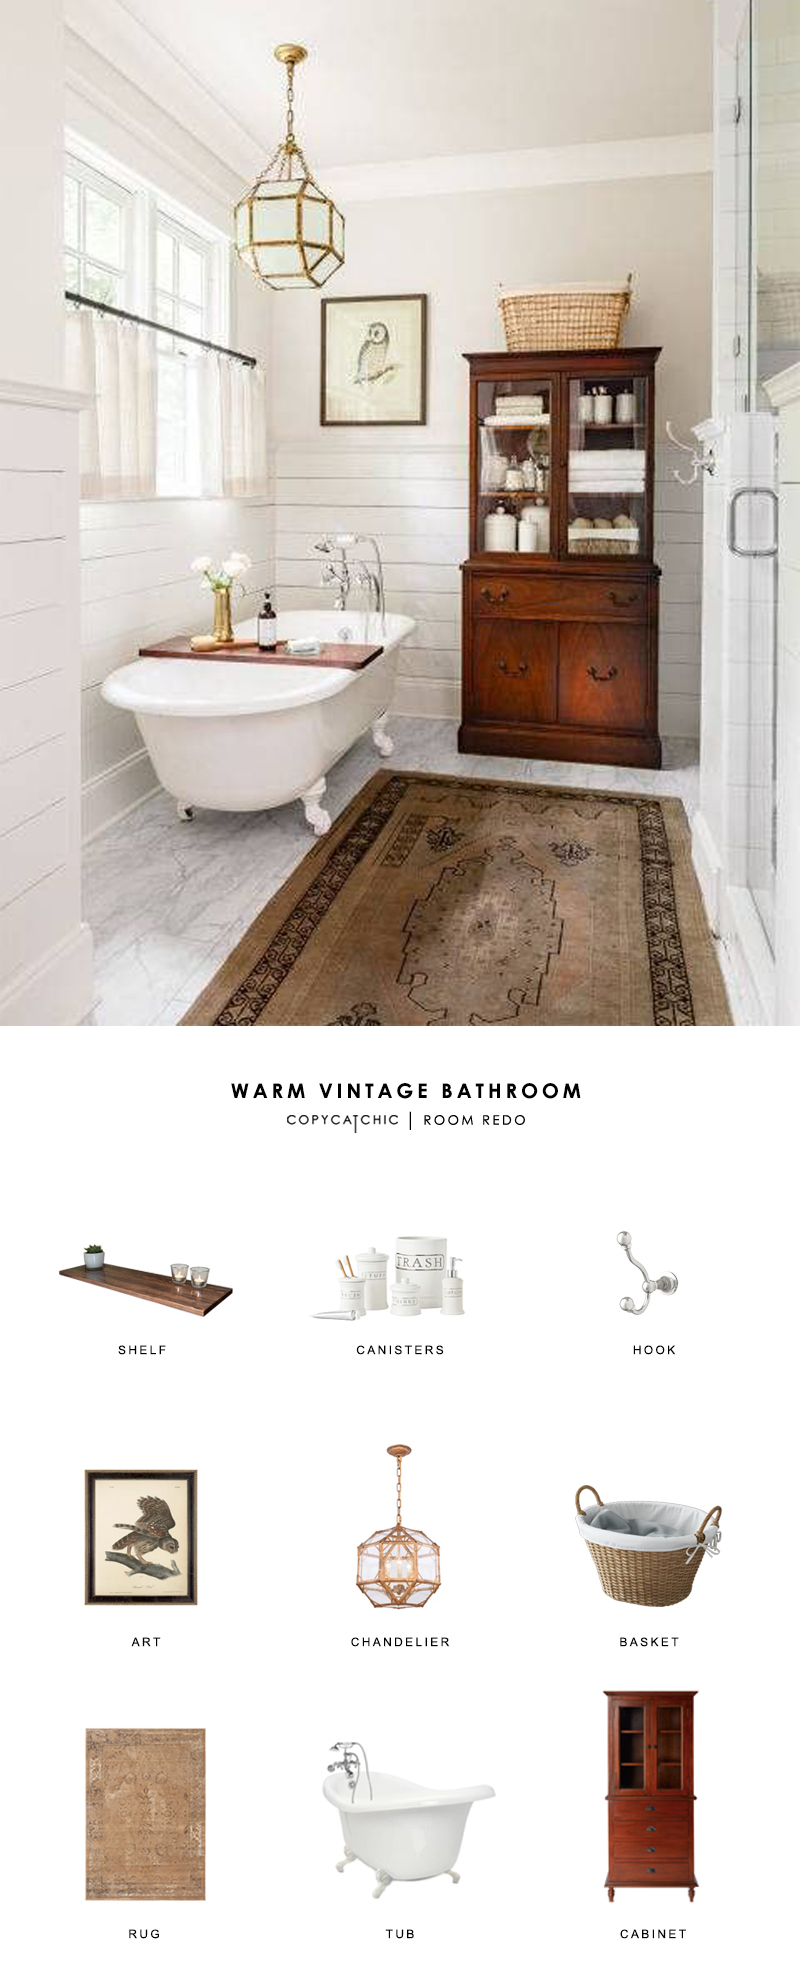 Room Redo | Warm Vintage Bathroom - copycatchic